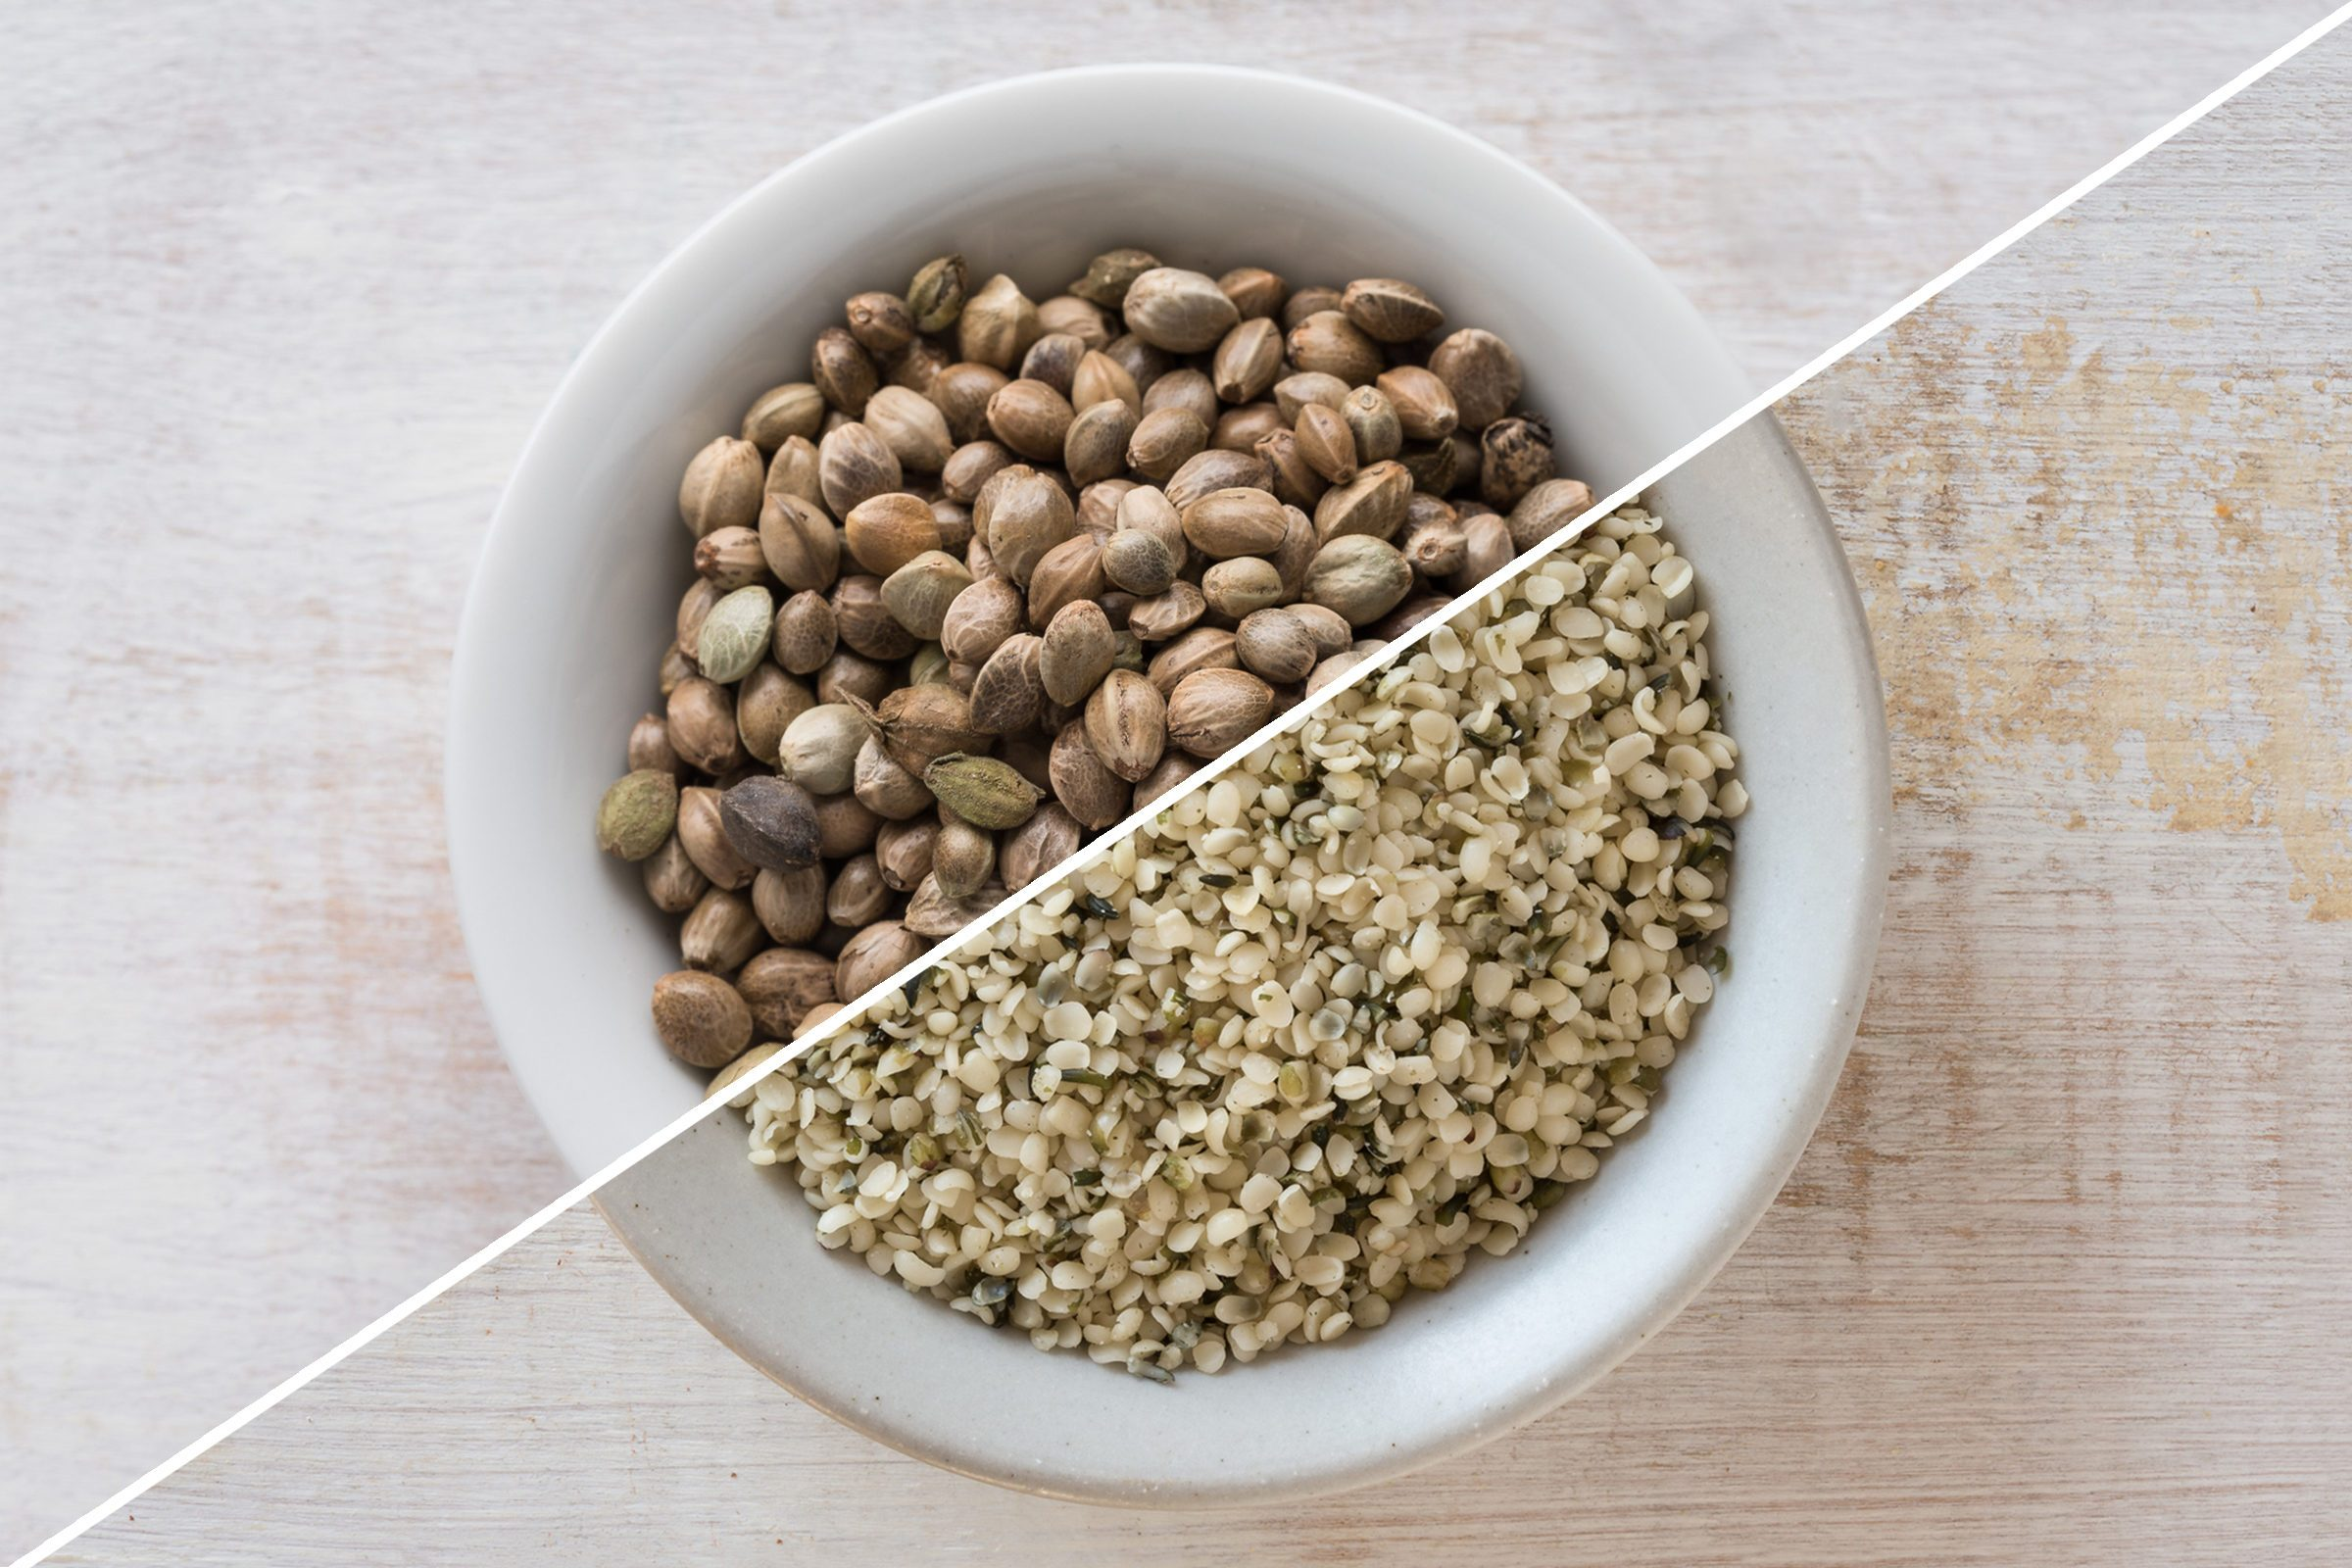 HEMP Seeds Powder to Prevent, Treats, and Cure COVID-19 virus